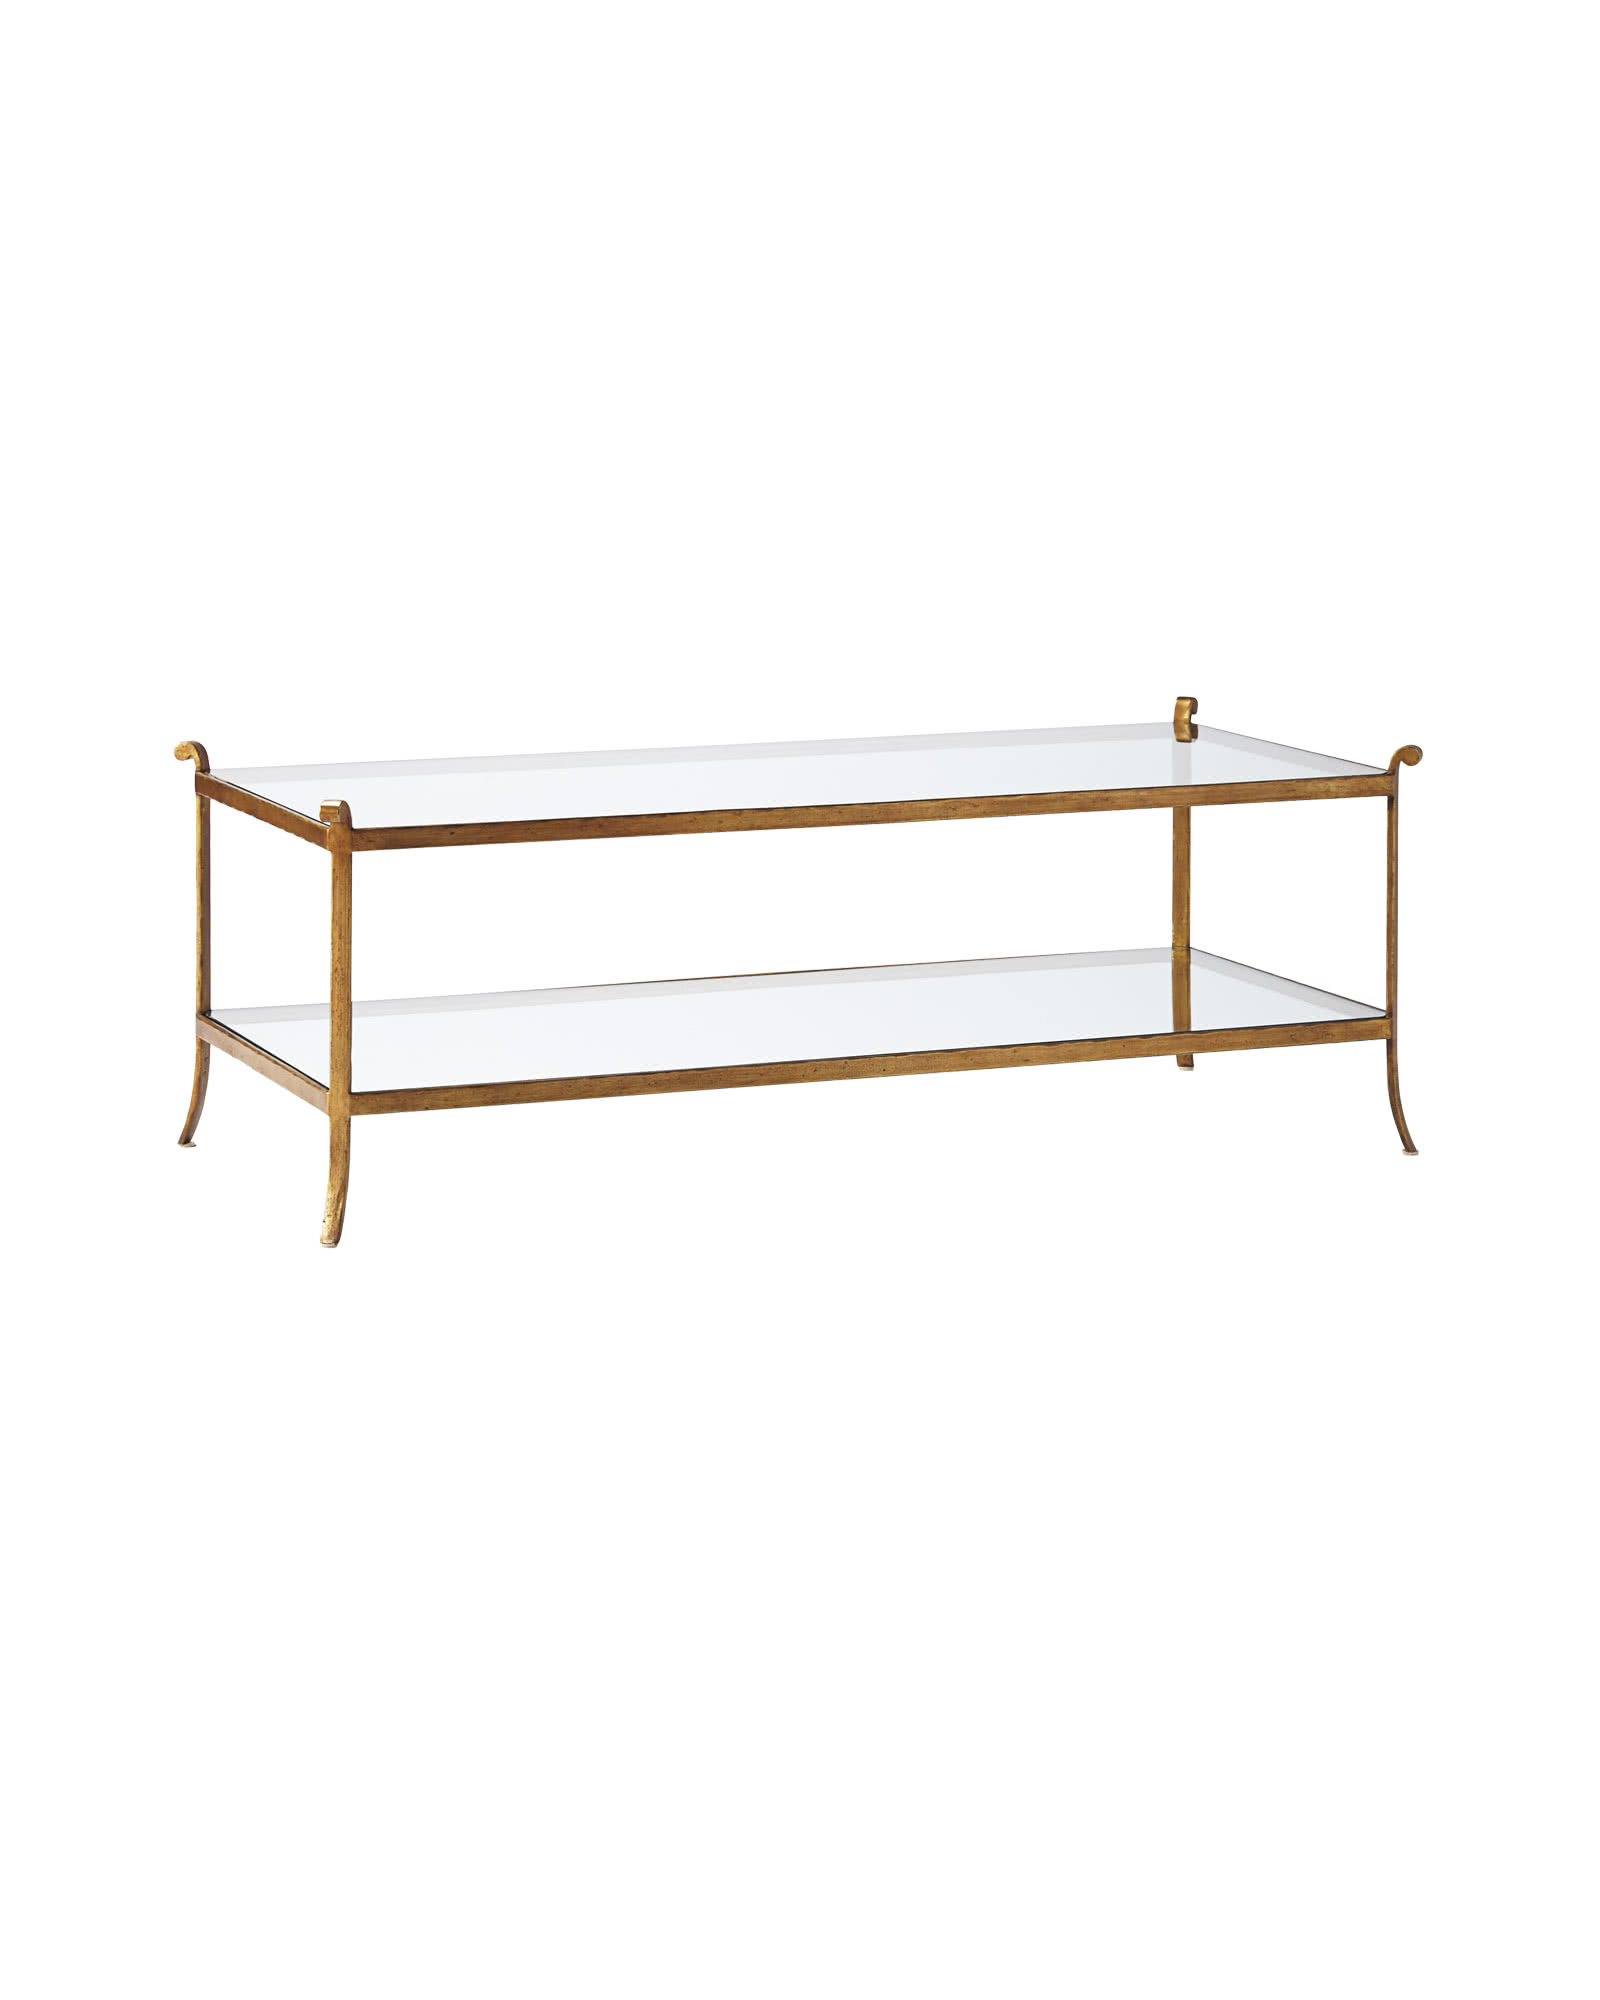 St. Germain Glass Coffee Table,